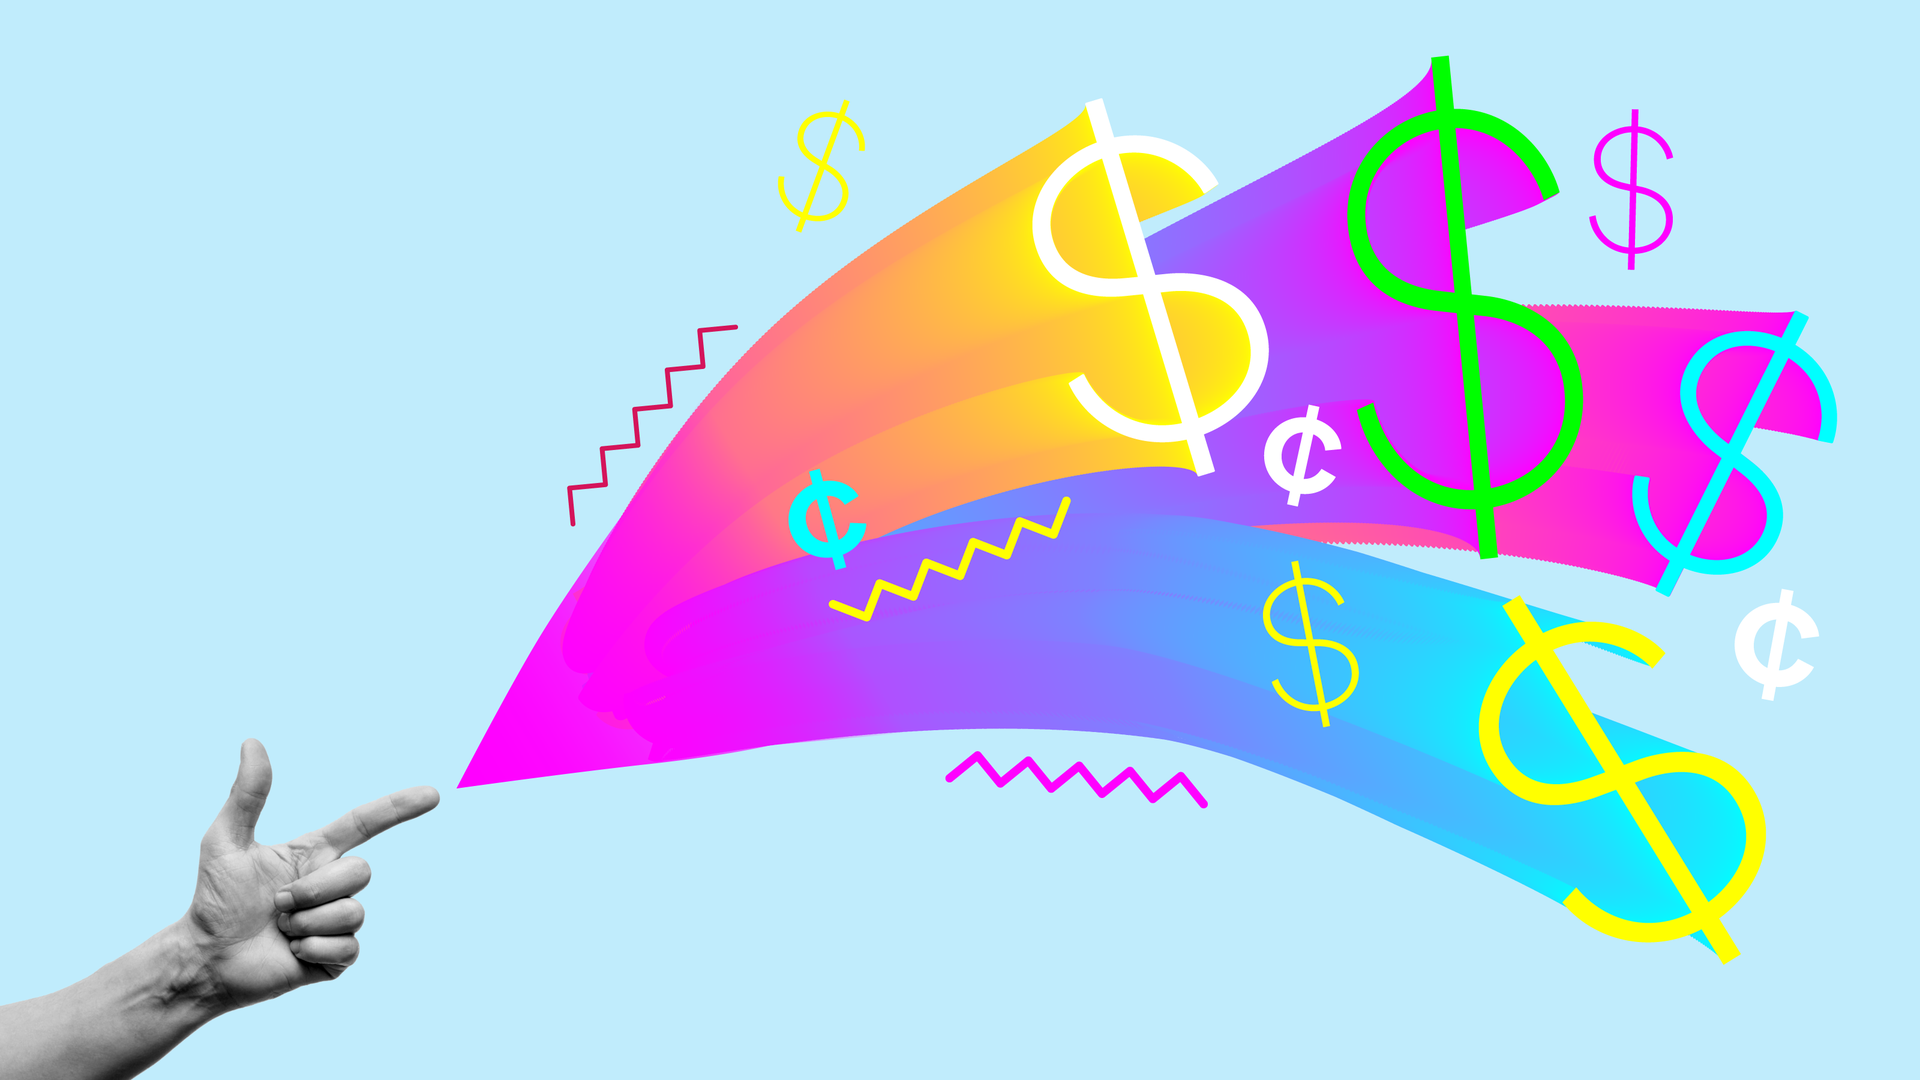 Illustration rainbow money signs shooting out of a hand.